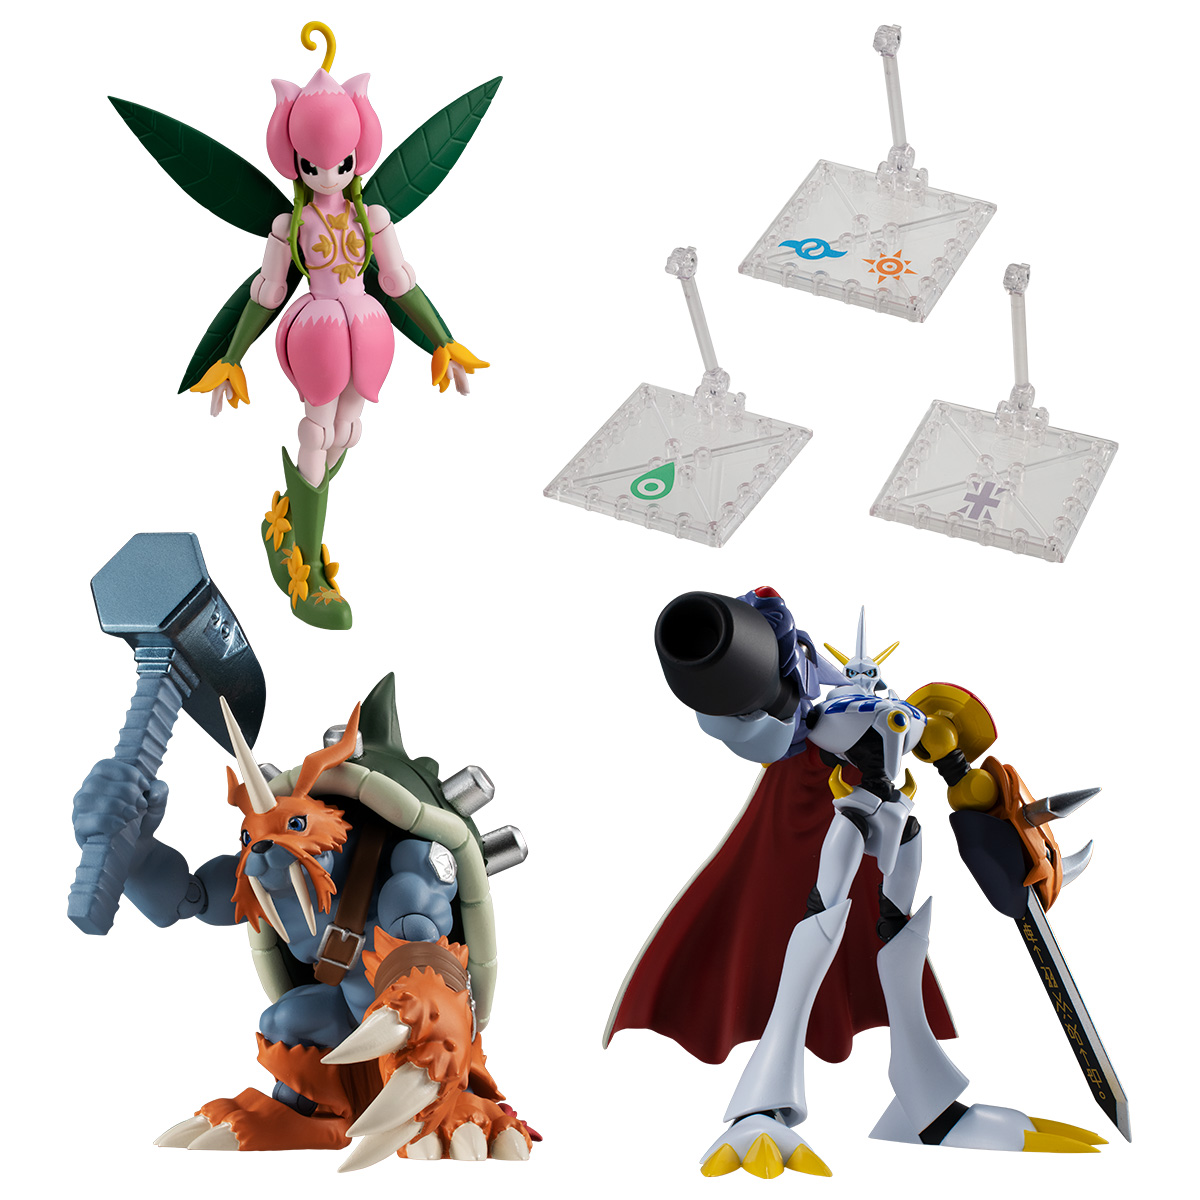 Premium Bandai Usa Official Online Store For Action Figures Model Kits Toys And More